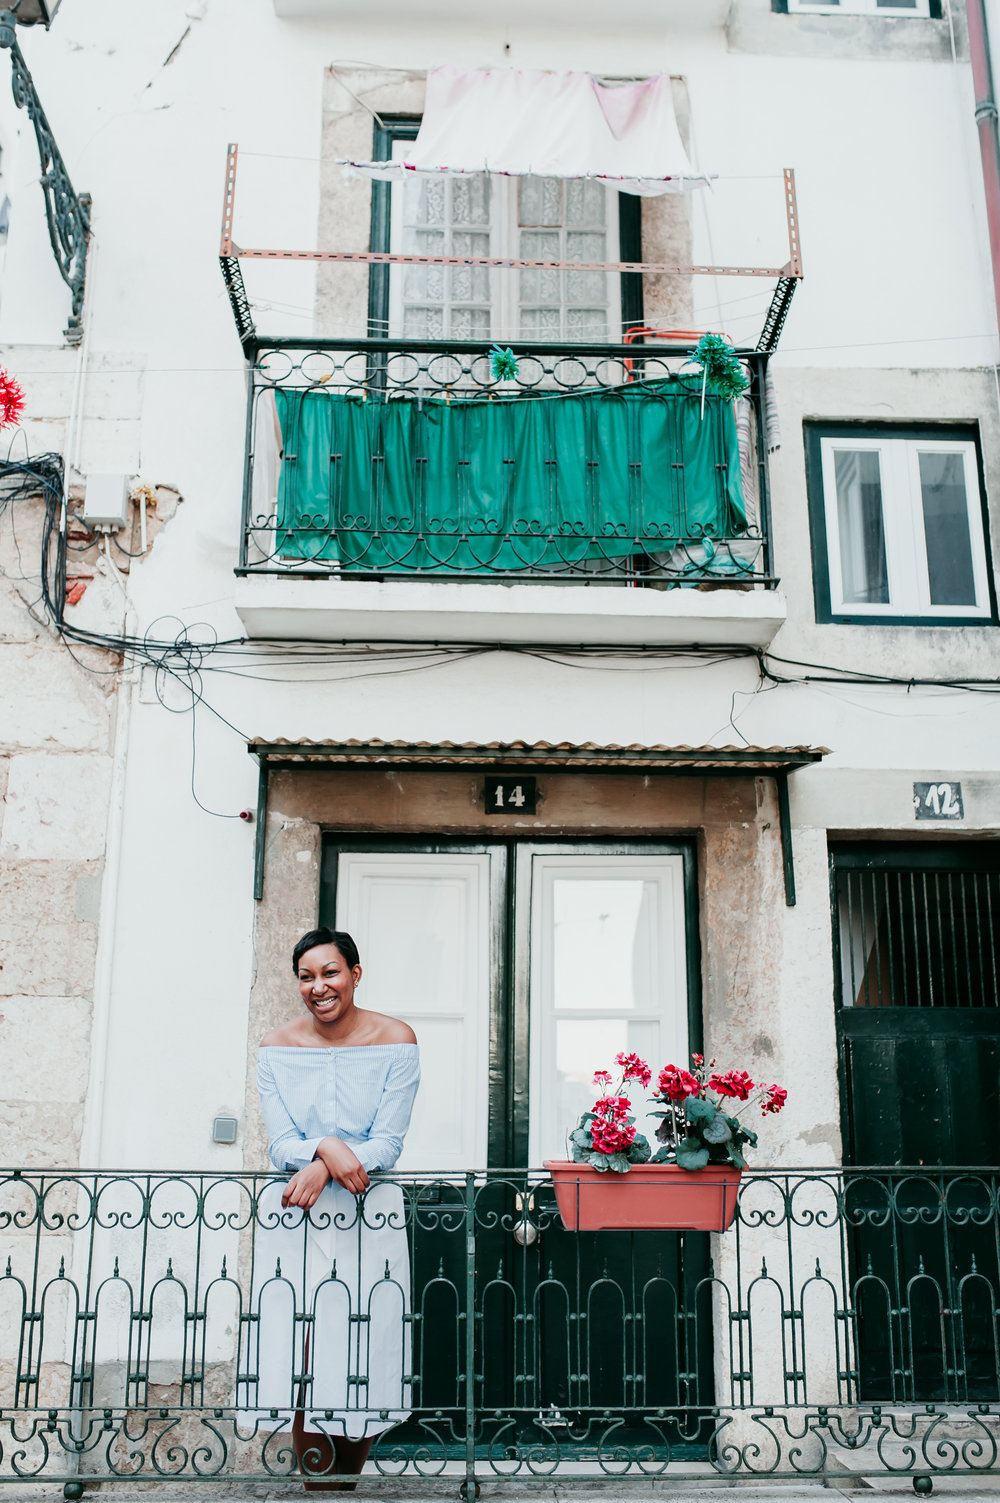 Check out Flytographer's Traveller of the Week in Lisbon   Hire a Vacation Photographer with Flytographer